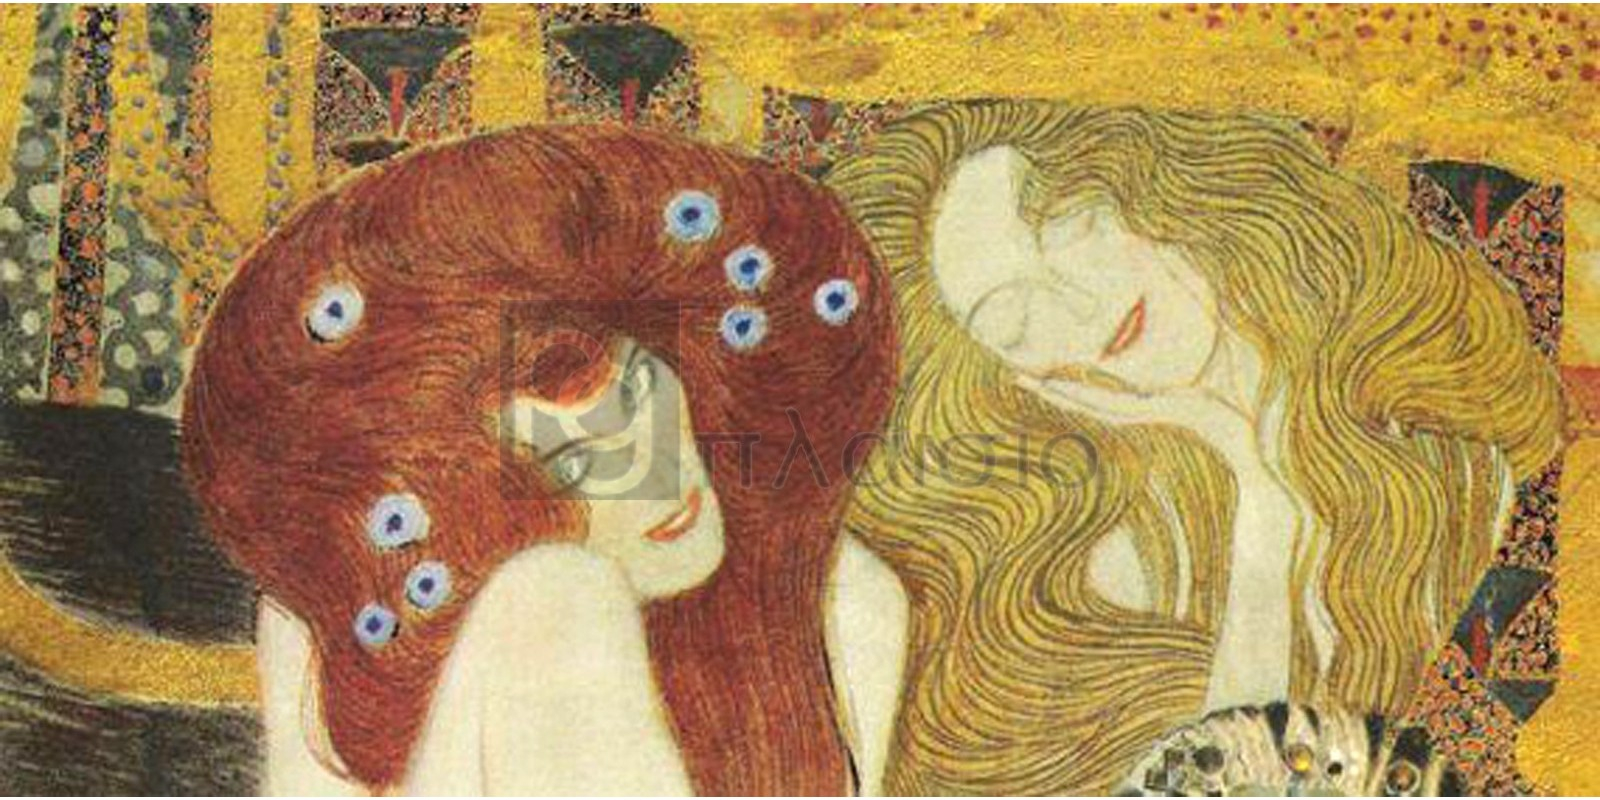 Gustav Klimt - Beethoven Frieze (detail)